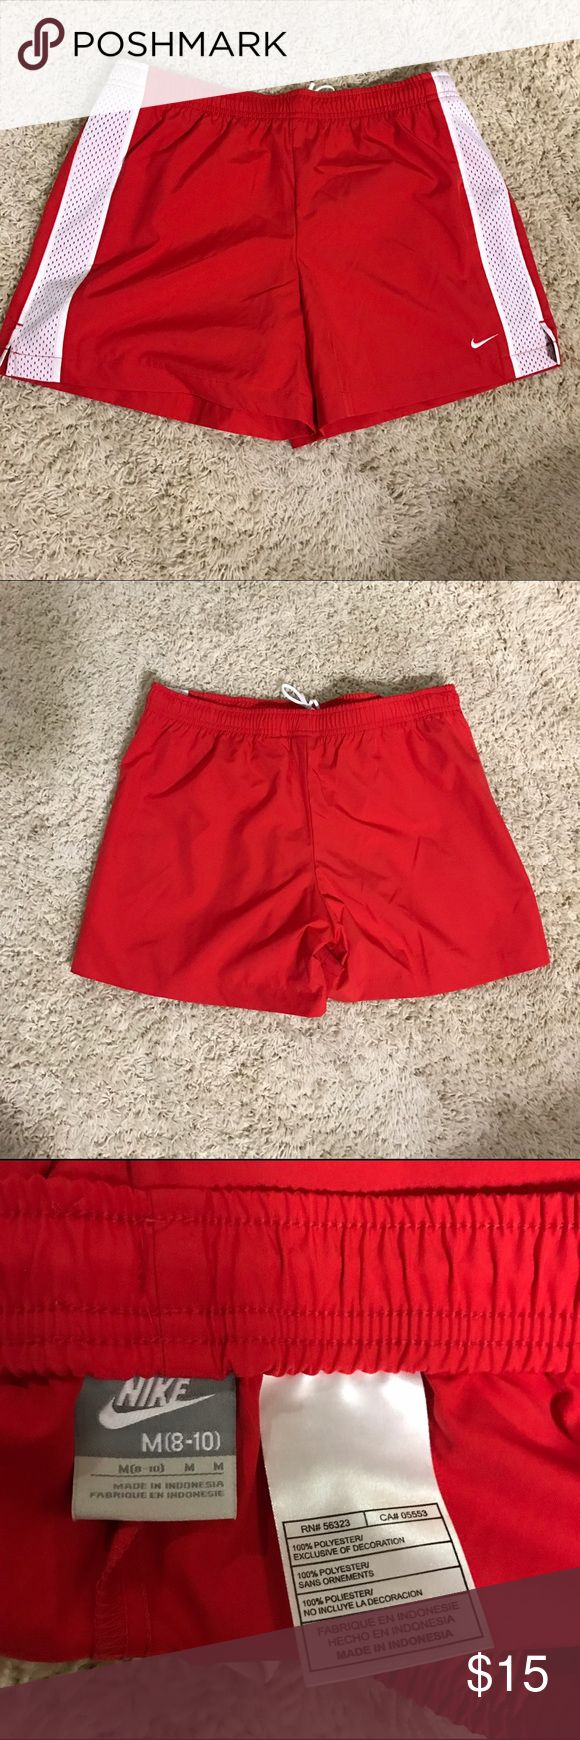 Women's Nike Shorts size Medium Women's Nike Shorts size Medium Nike Shorts